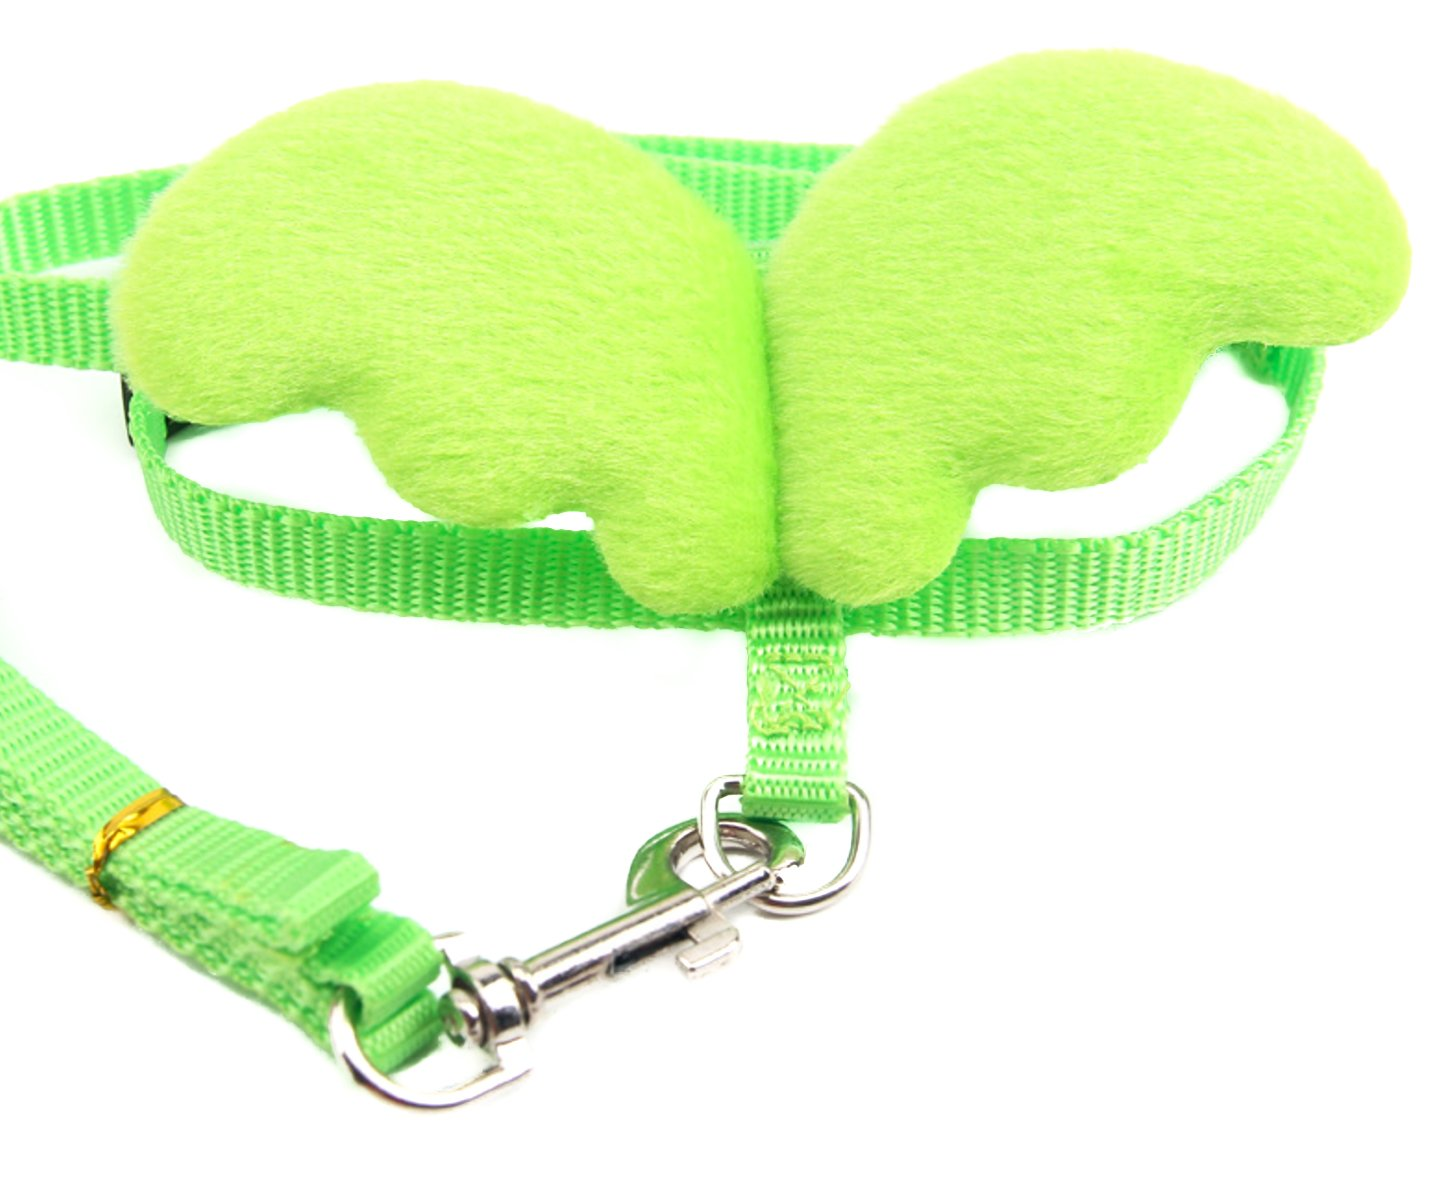 Small Pet Animal Harness and Leash Angel Wings for Baby Ferret Chinchilla Mouse Lizard Chipmunk Gerbil Degu Rat reptile gecko (Green)